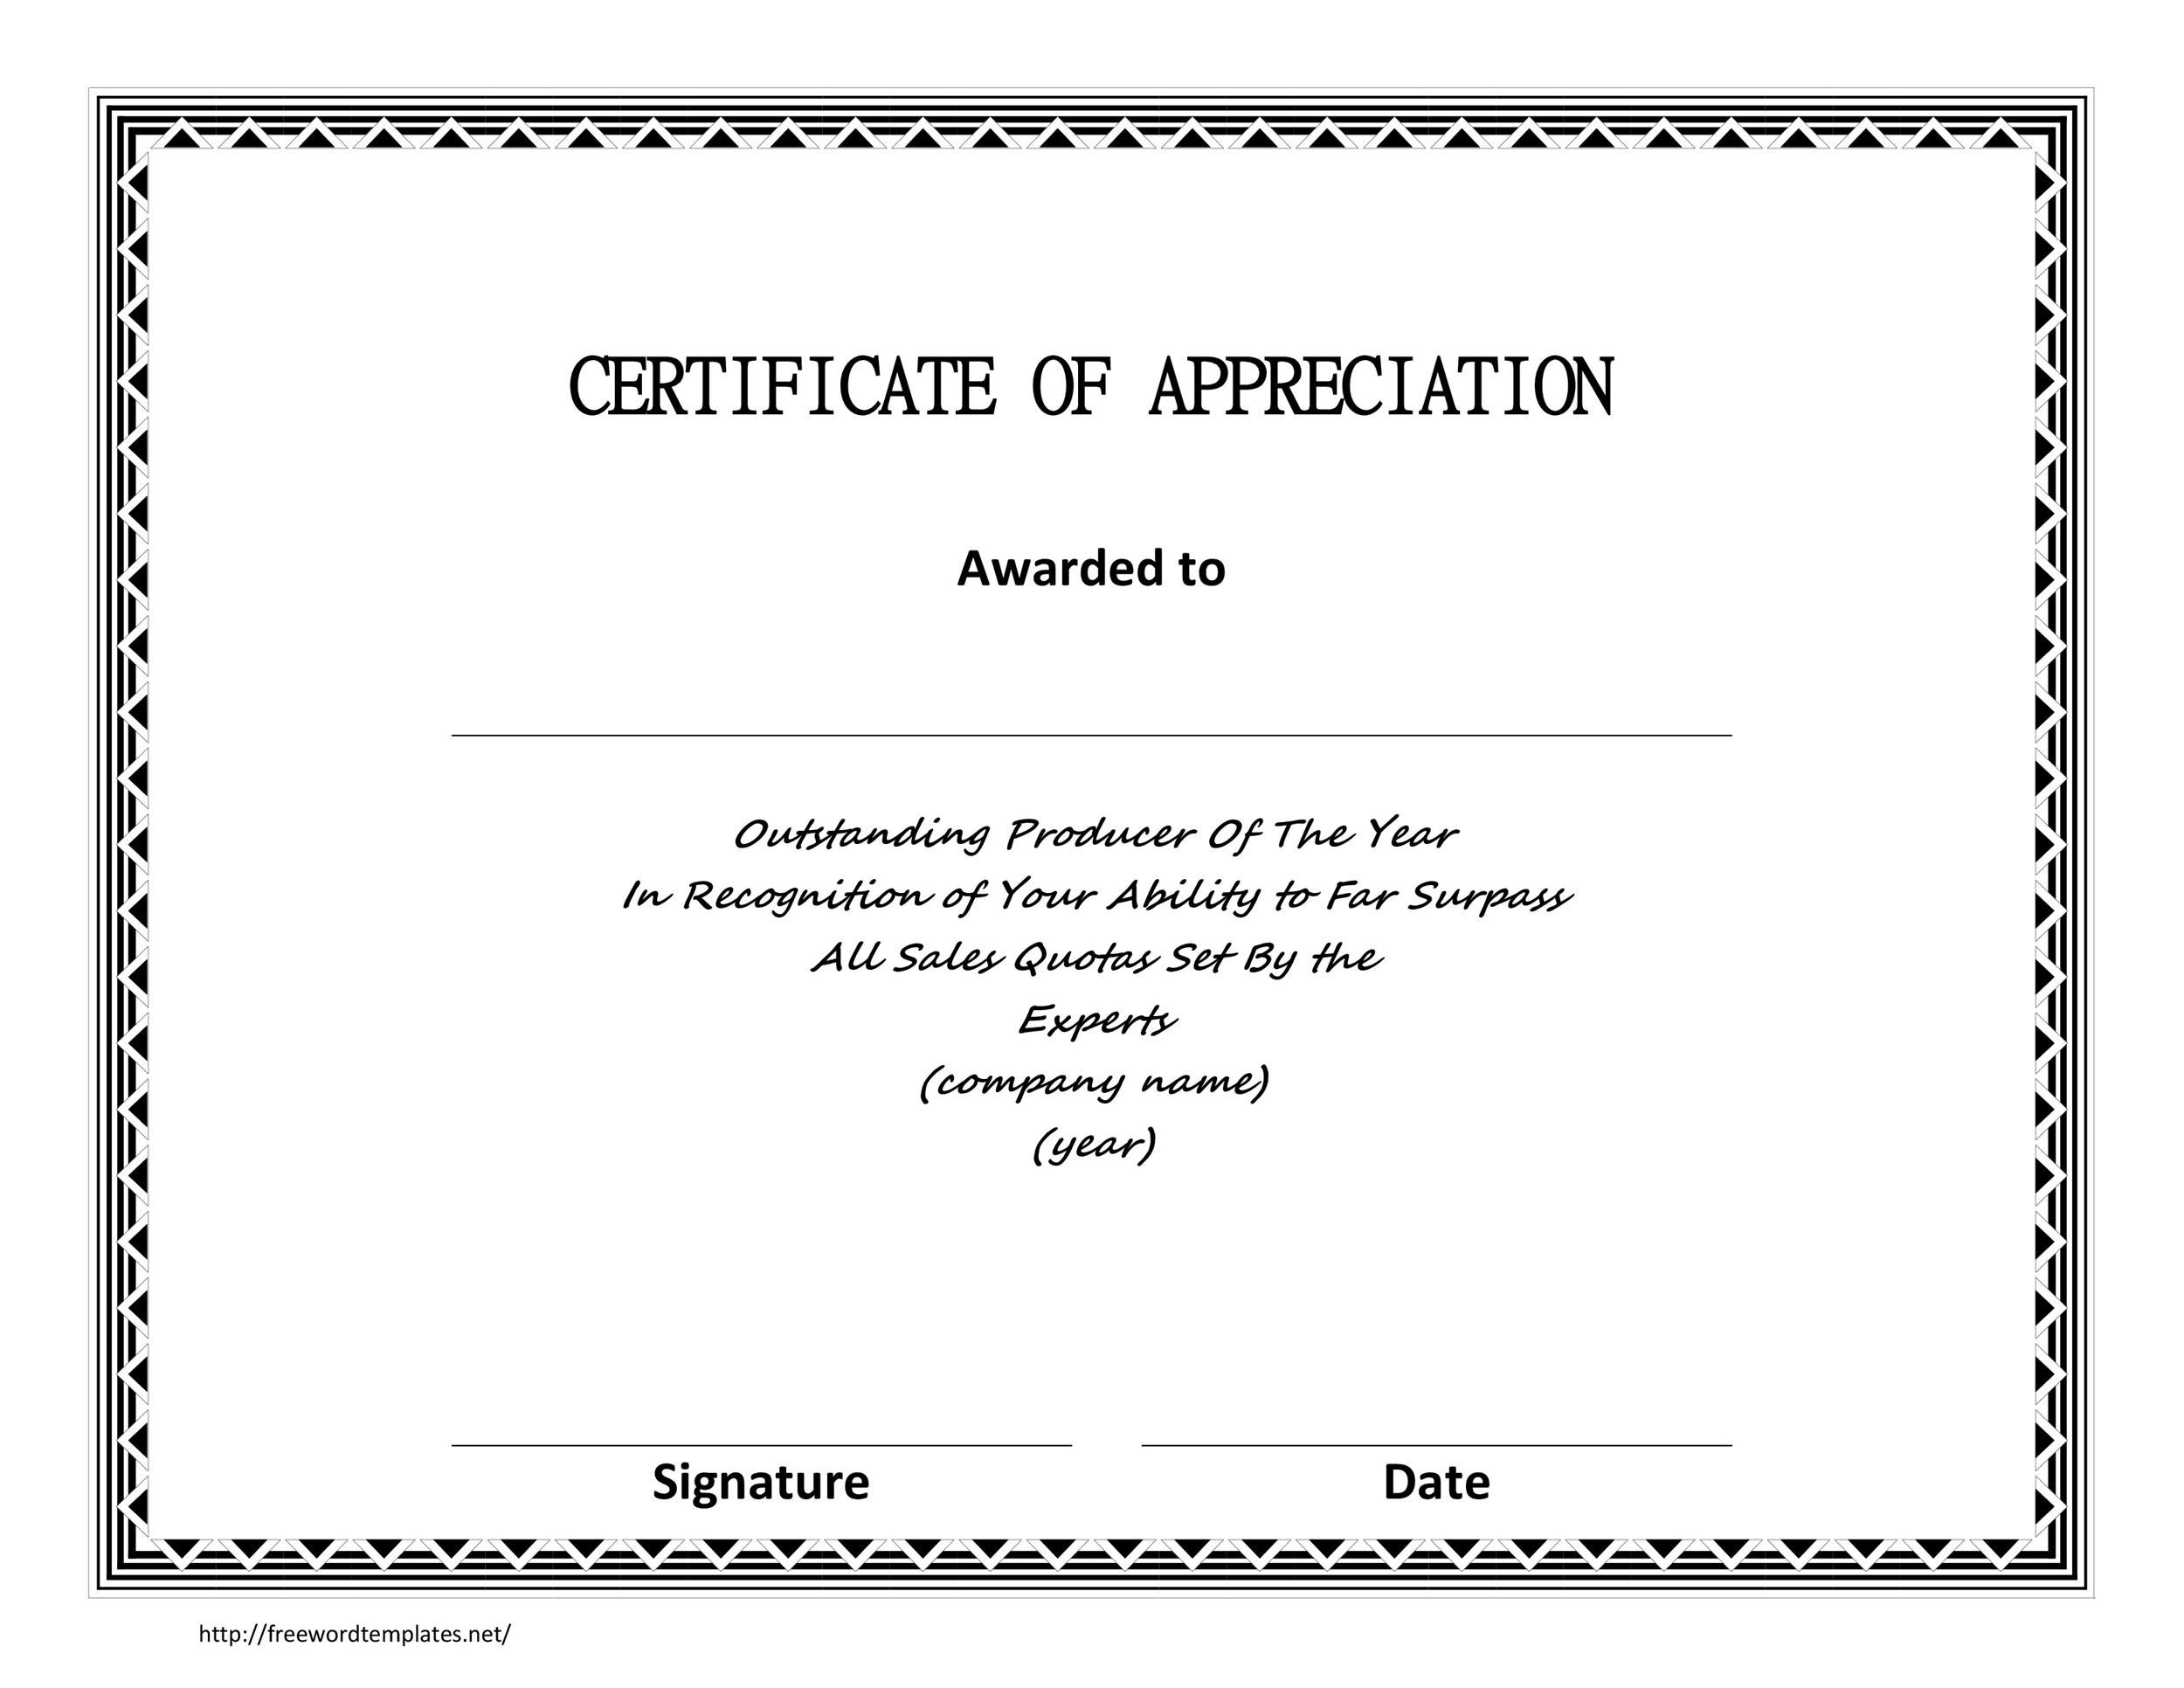 30 free certificate of appreciation templates and letters printable certificate of appreciation 06 icon download 2900 kb yadclub Image collections